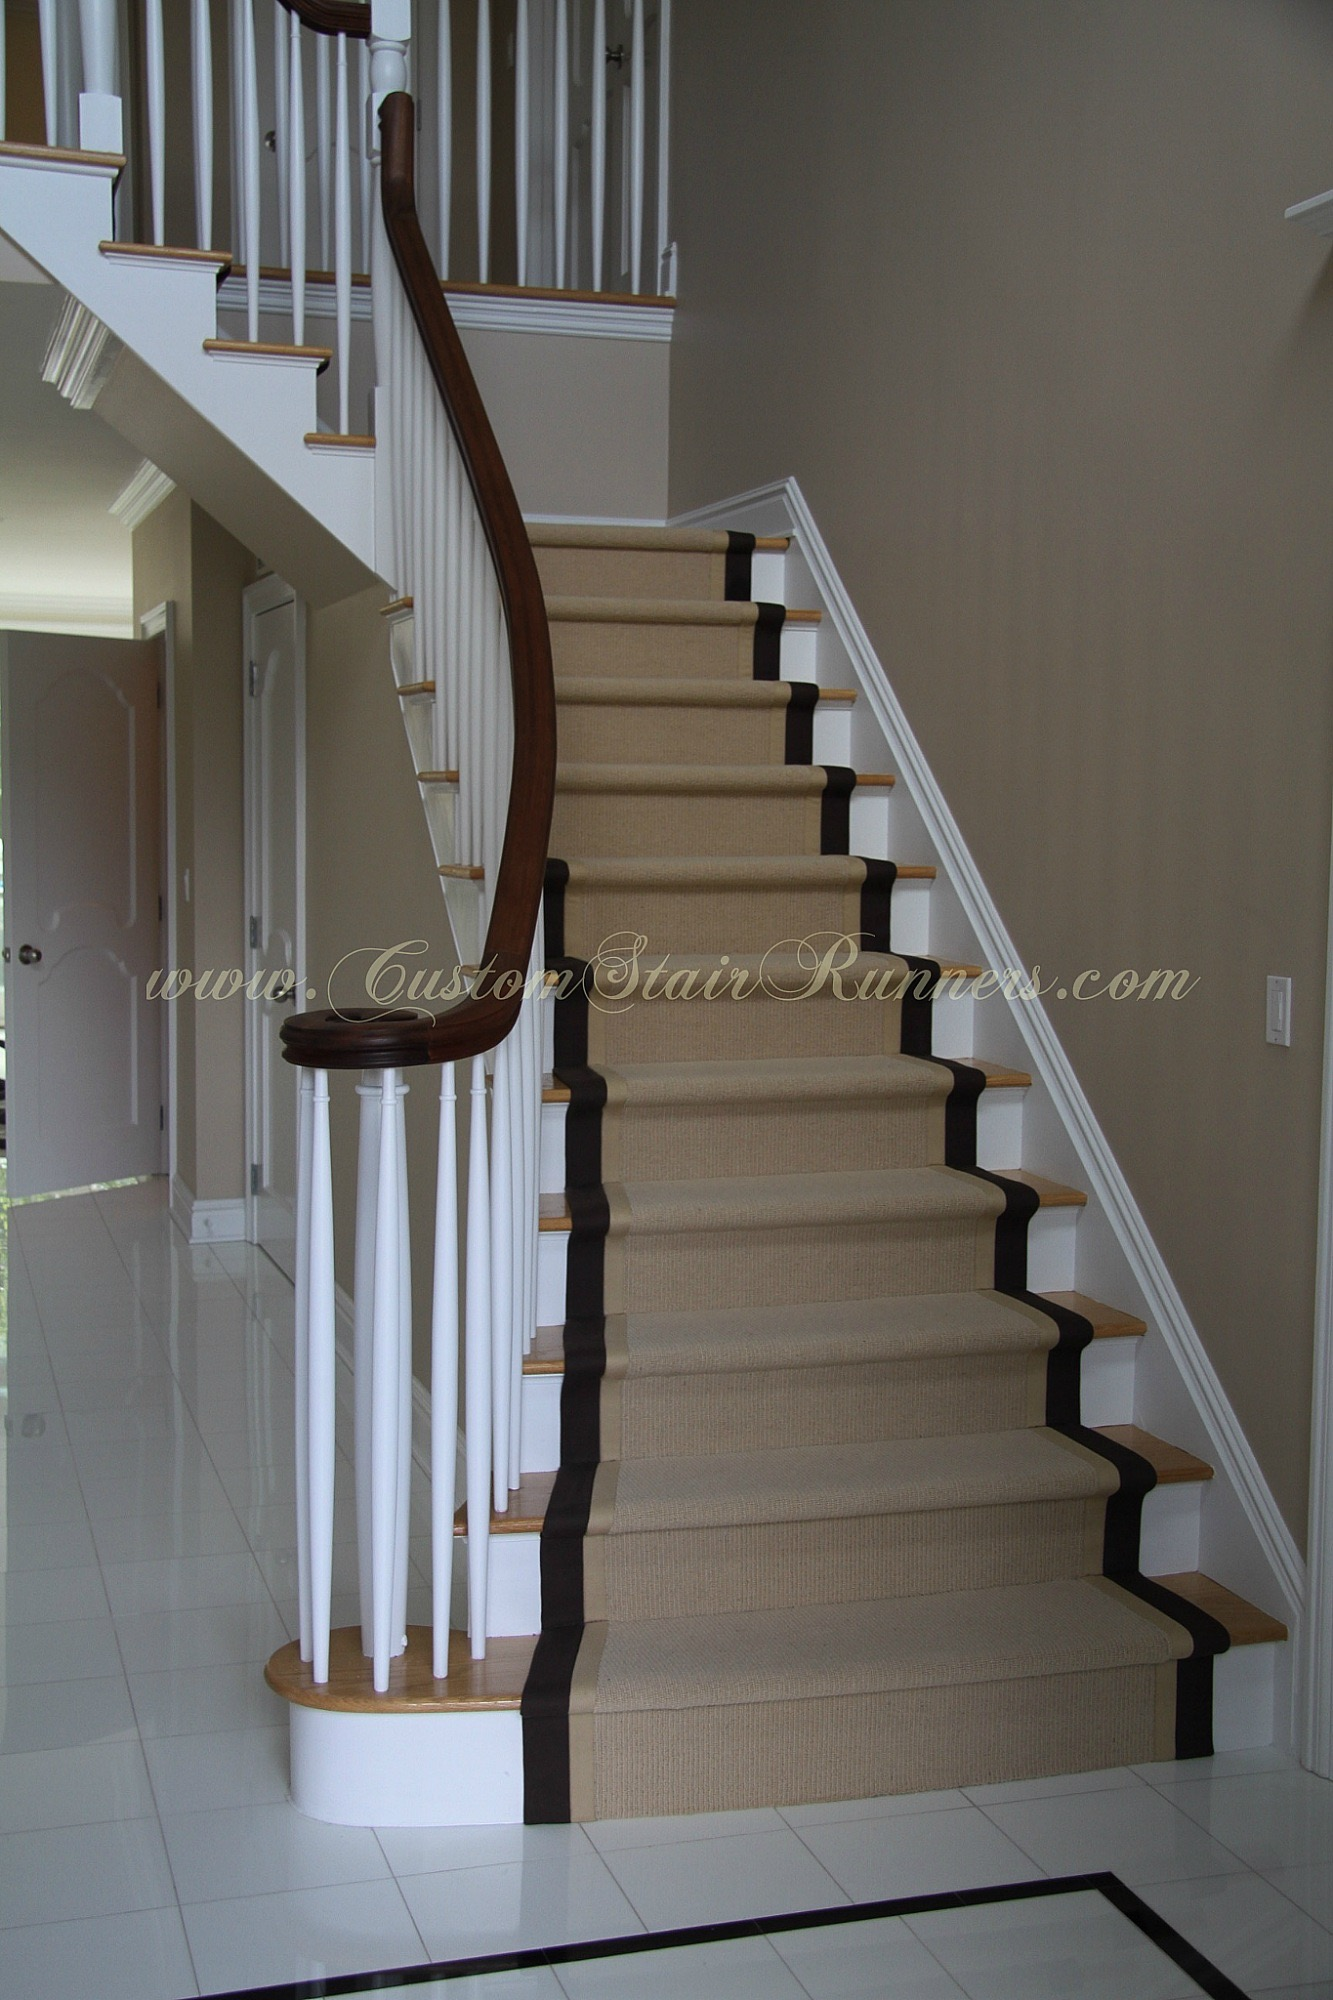 Custom Stair Runners Custom Stair Runners